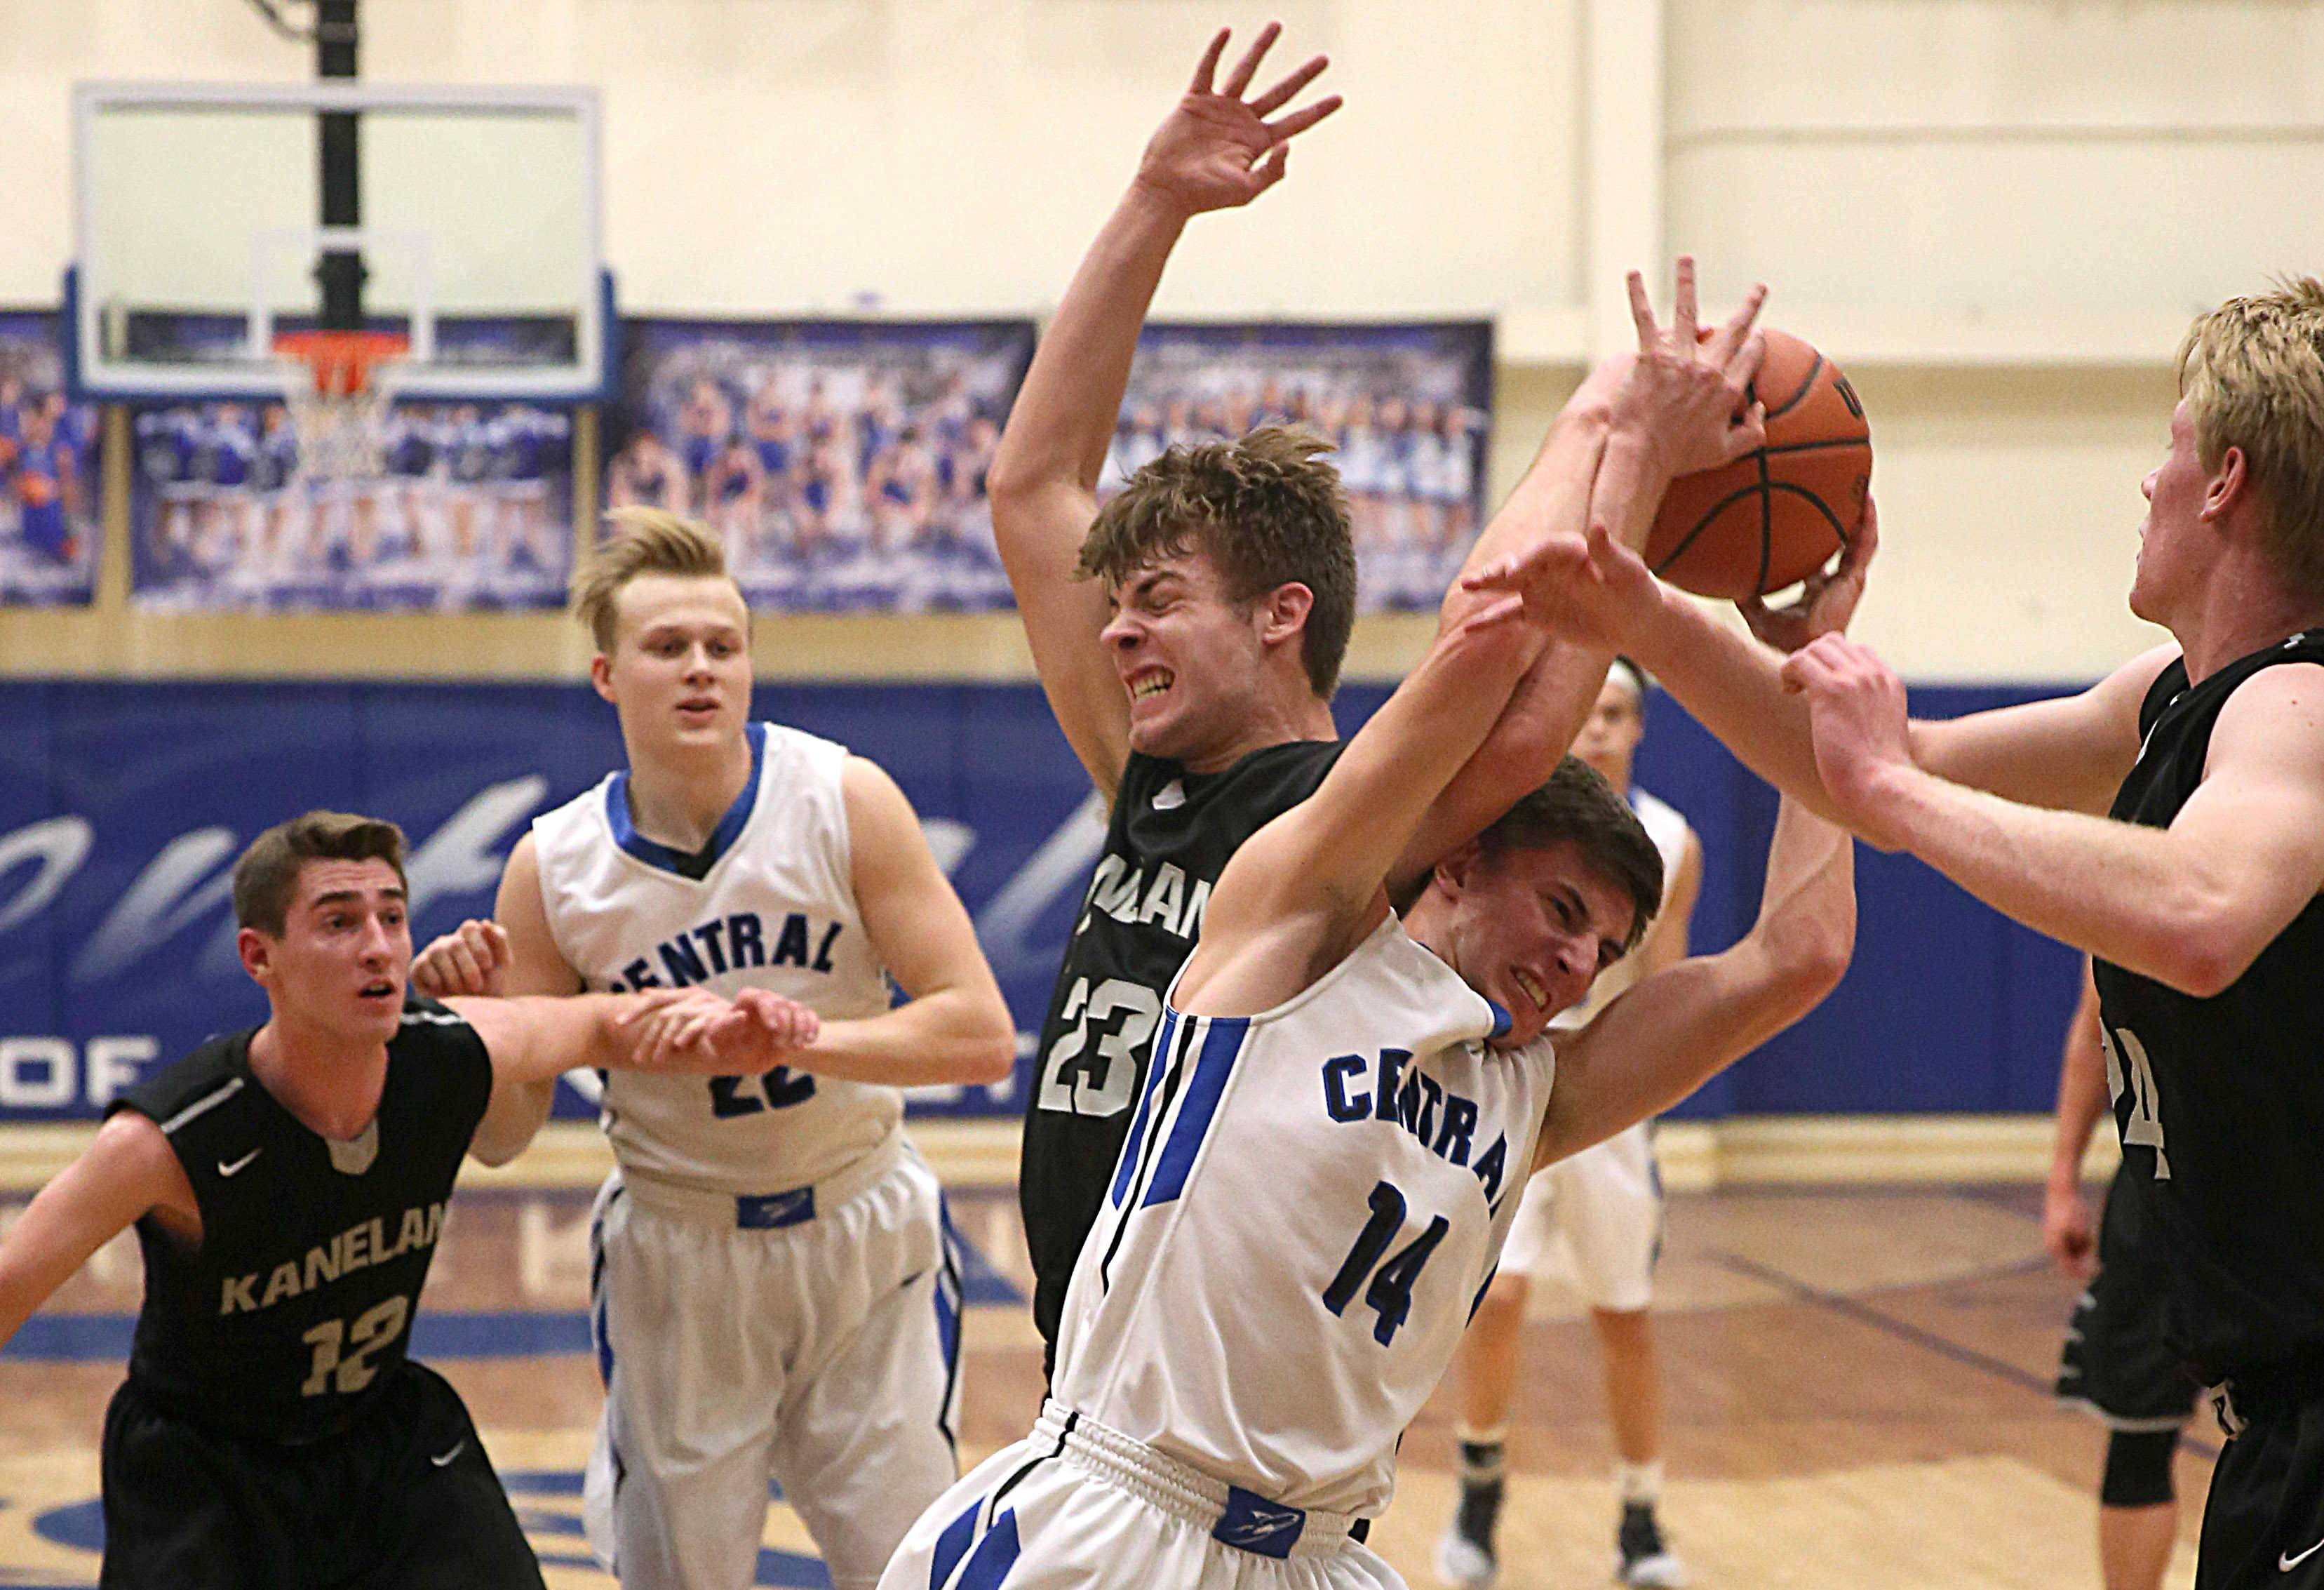 Kaneland's Blake Feiza and Burlington Central's Zach Schutta battle for control of the ball during a varsity boys basketball game as part of the 2017 MLK Classic Basketball Tournament at Central High School Friday night.